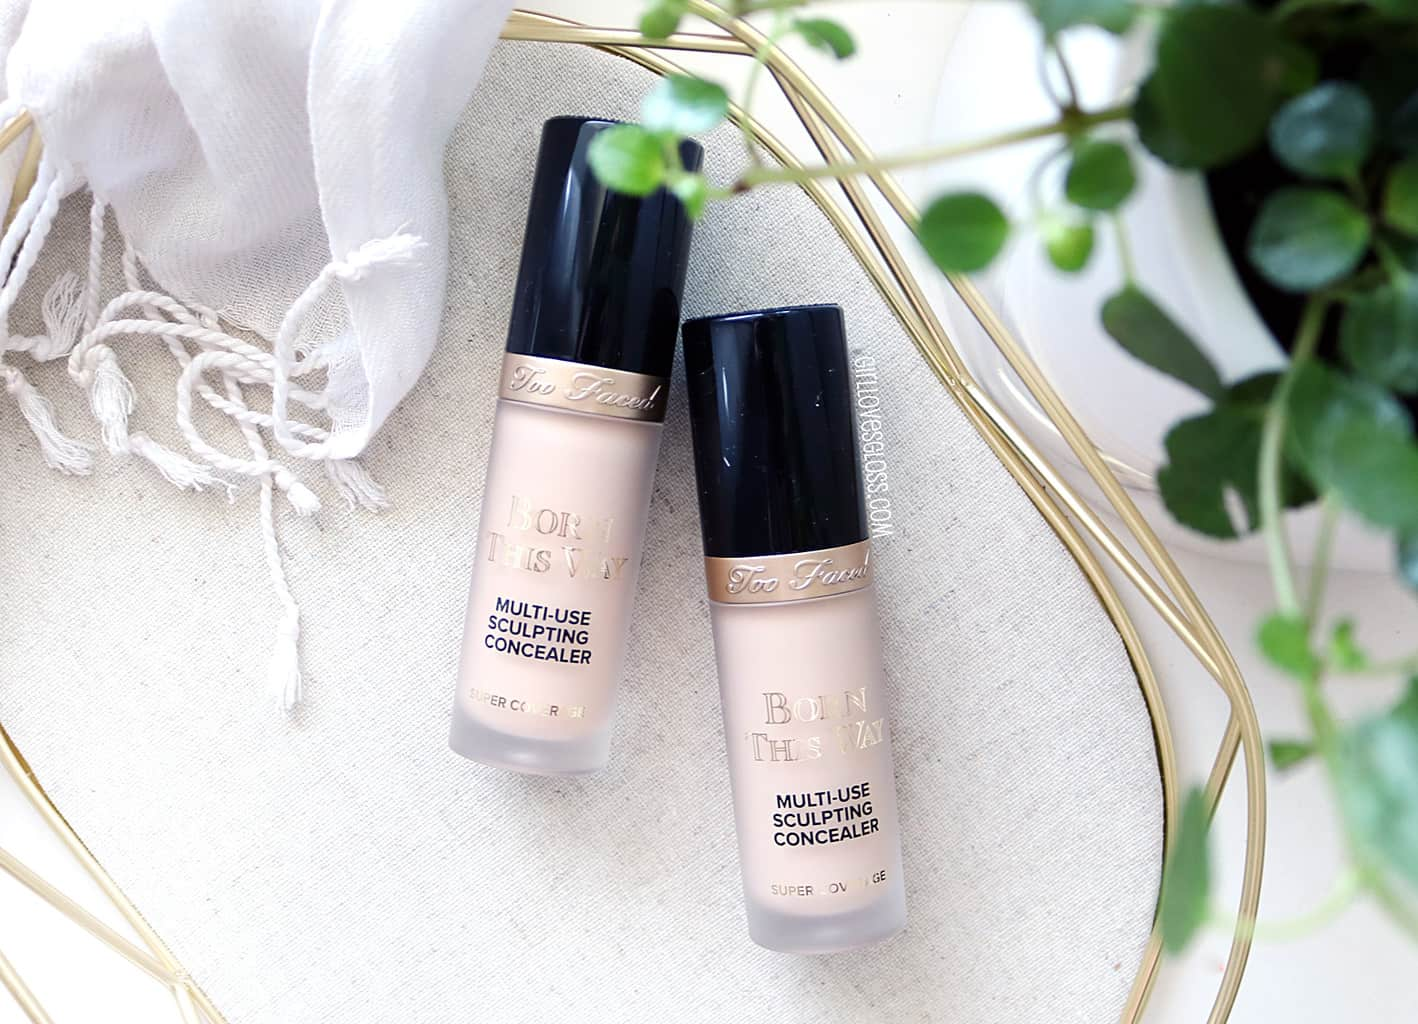 Too Faced Born This Way Super Coverage Multi Use Sculpting Concealer